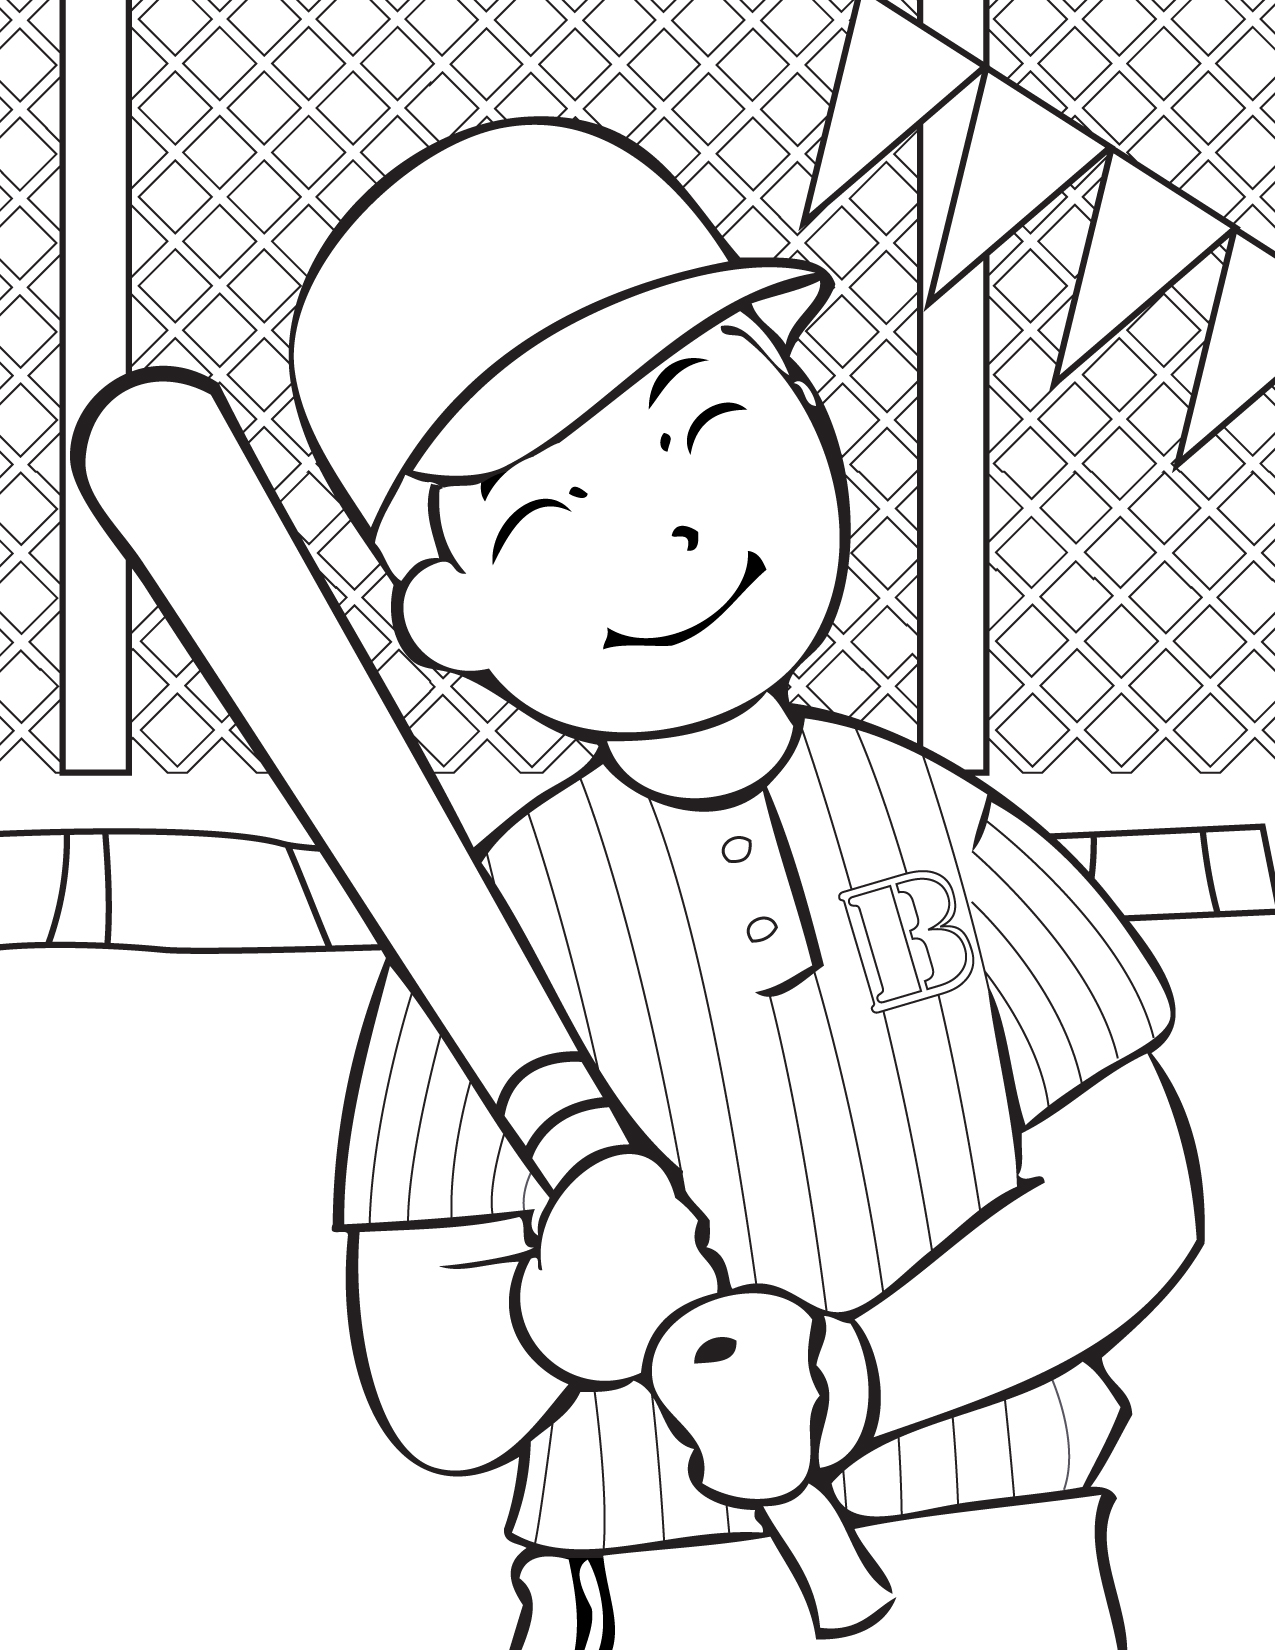 free sports coloring pages printable - photo#18